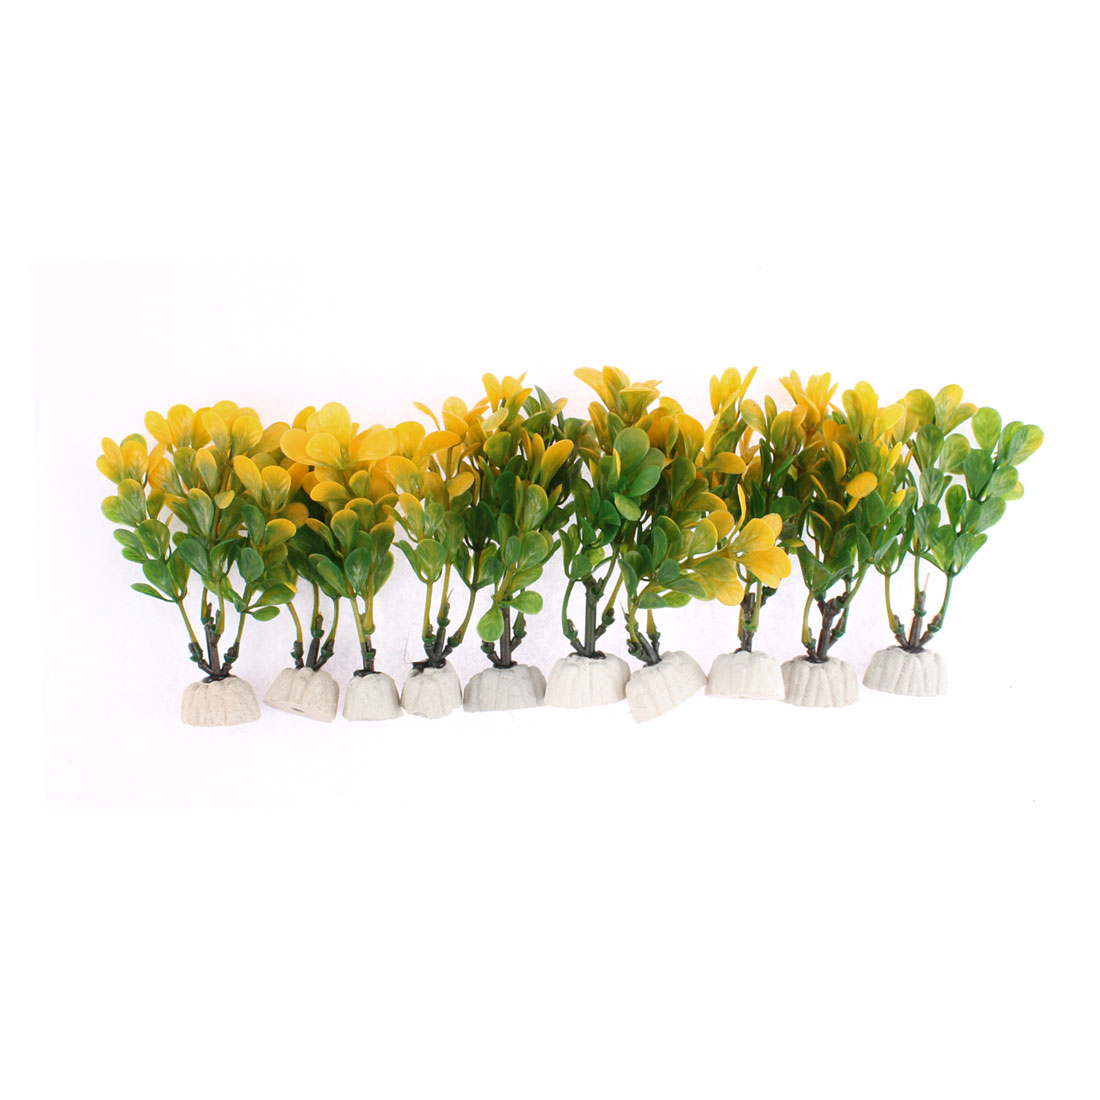 Aquarium Simulated Water Plant Grass Ornament 11.5cm Height 10pcs